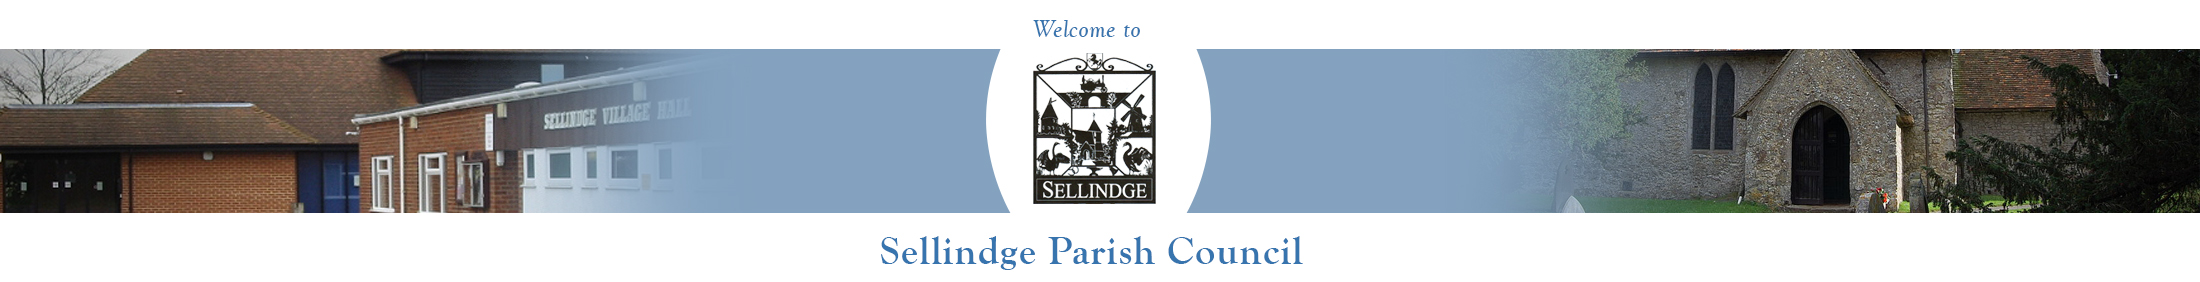 Header Image for Sellindge Parish Council